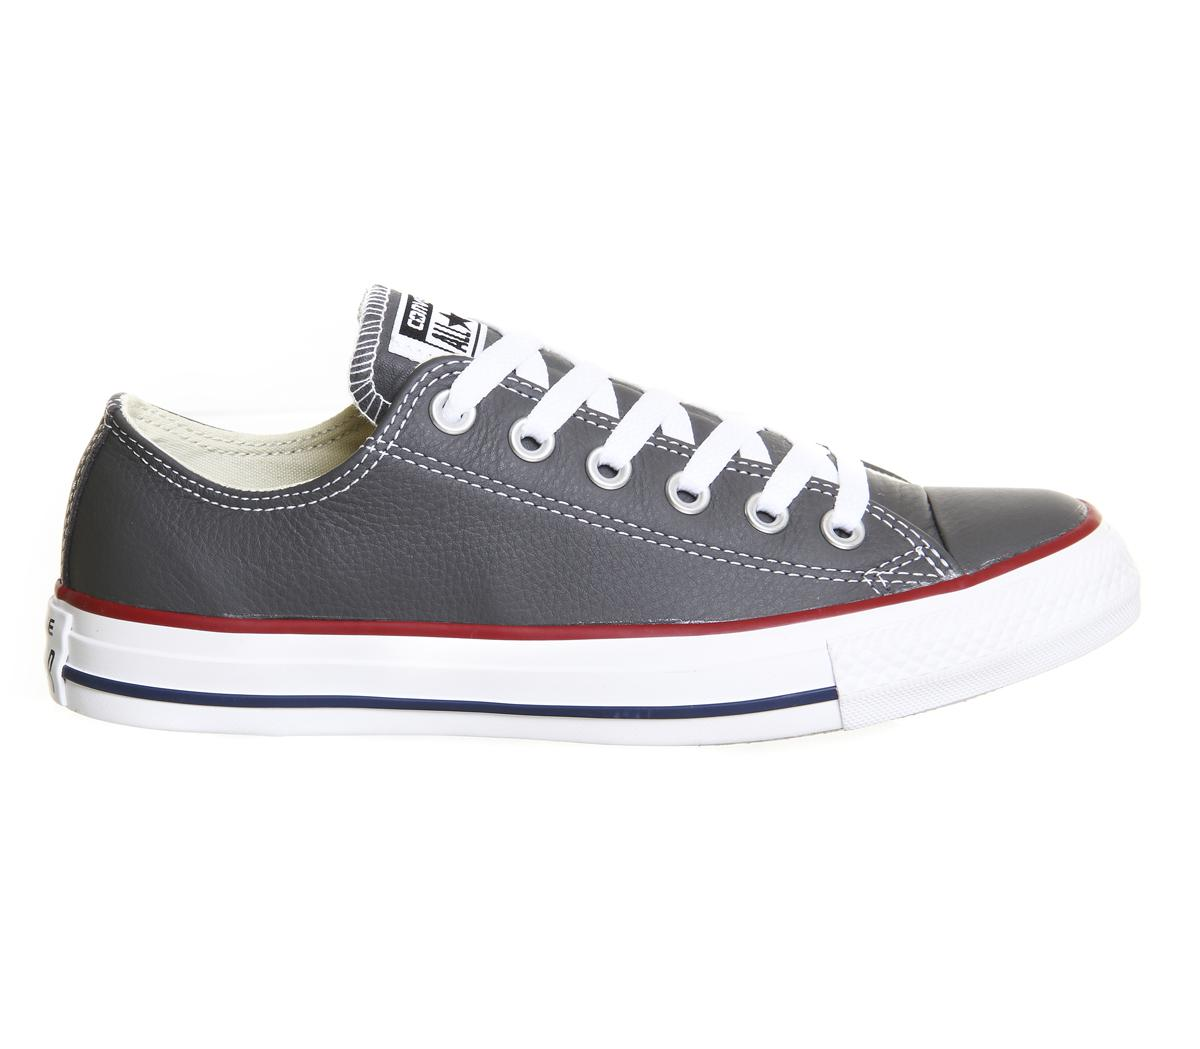 lyst converse all star low leather for men. Black Bedroom Furniture Sets. Home Design Ideas